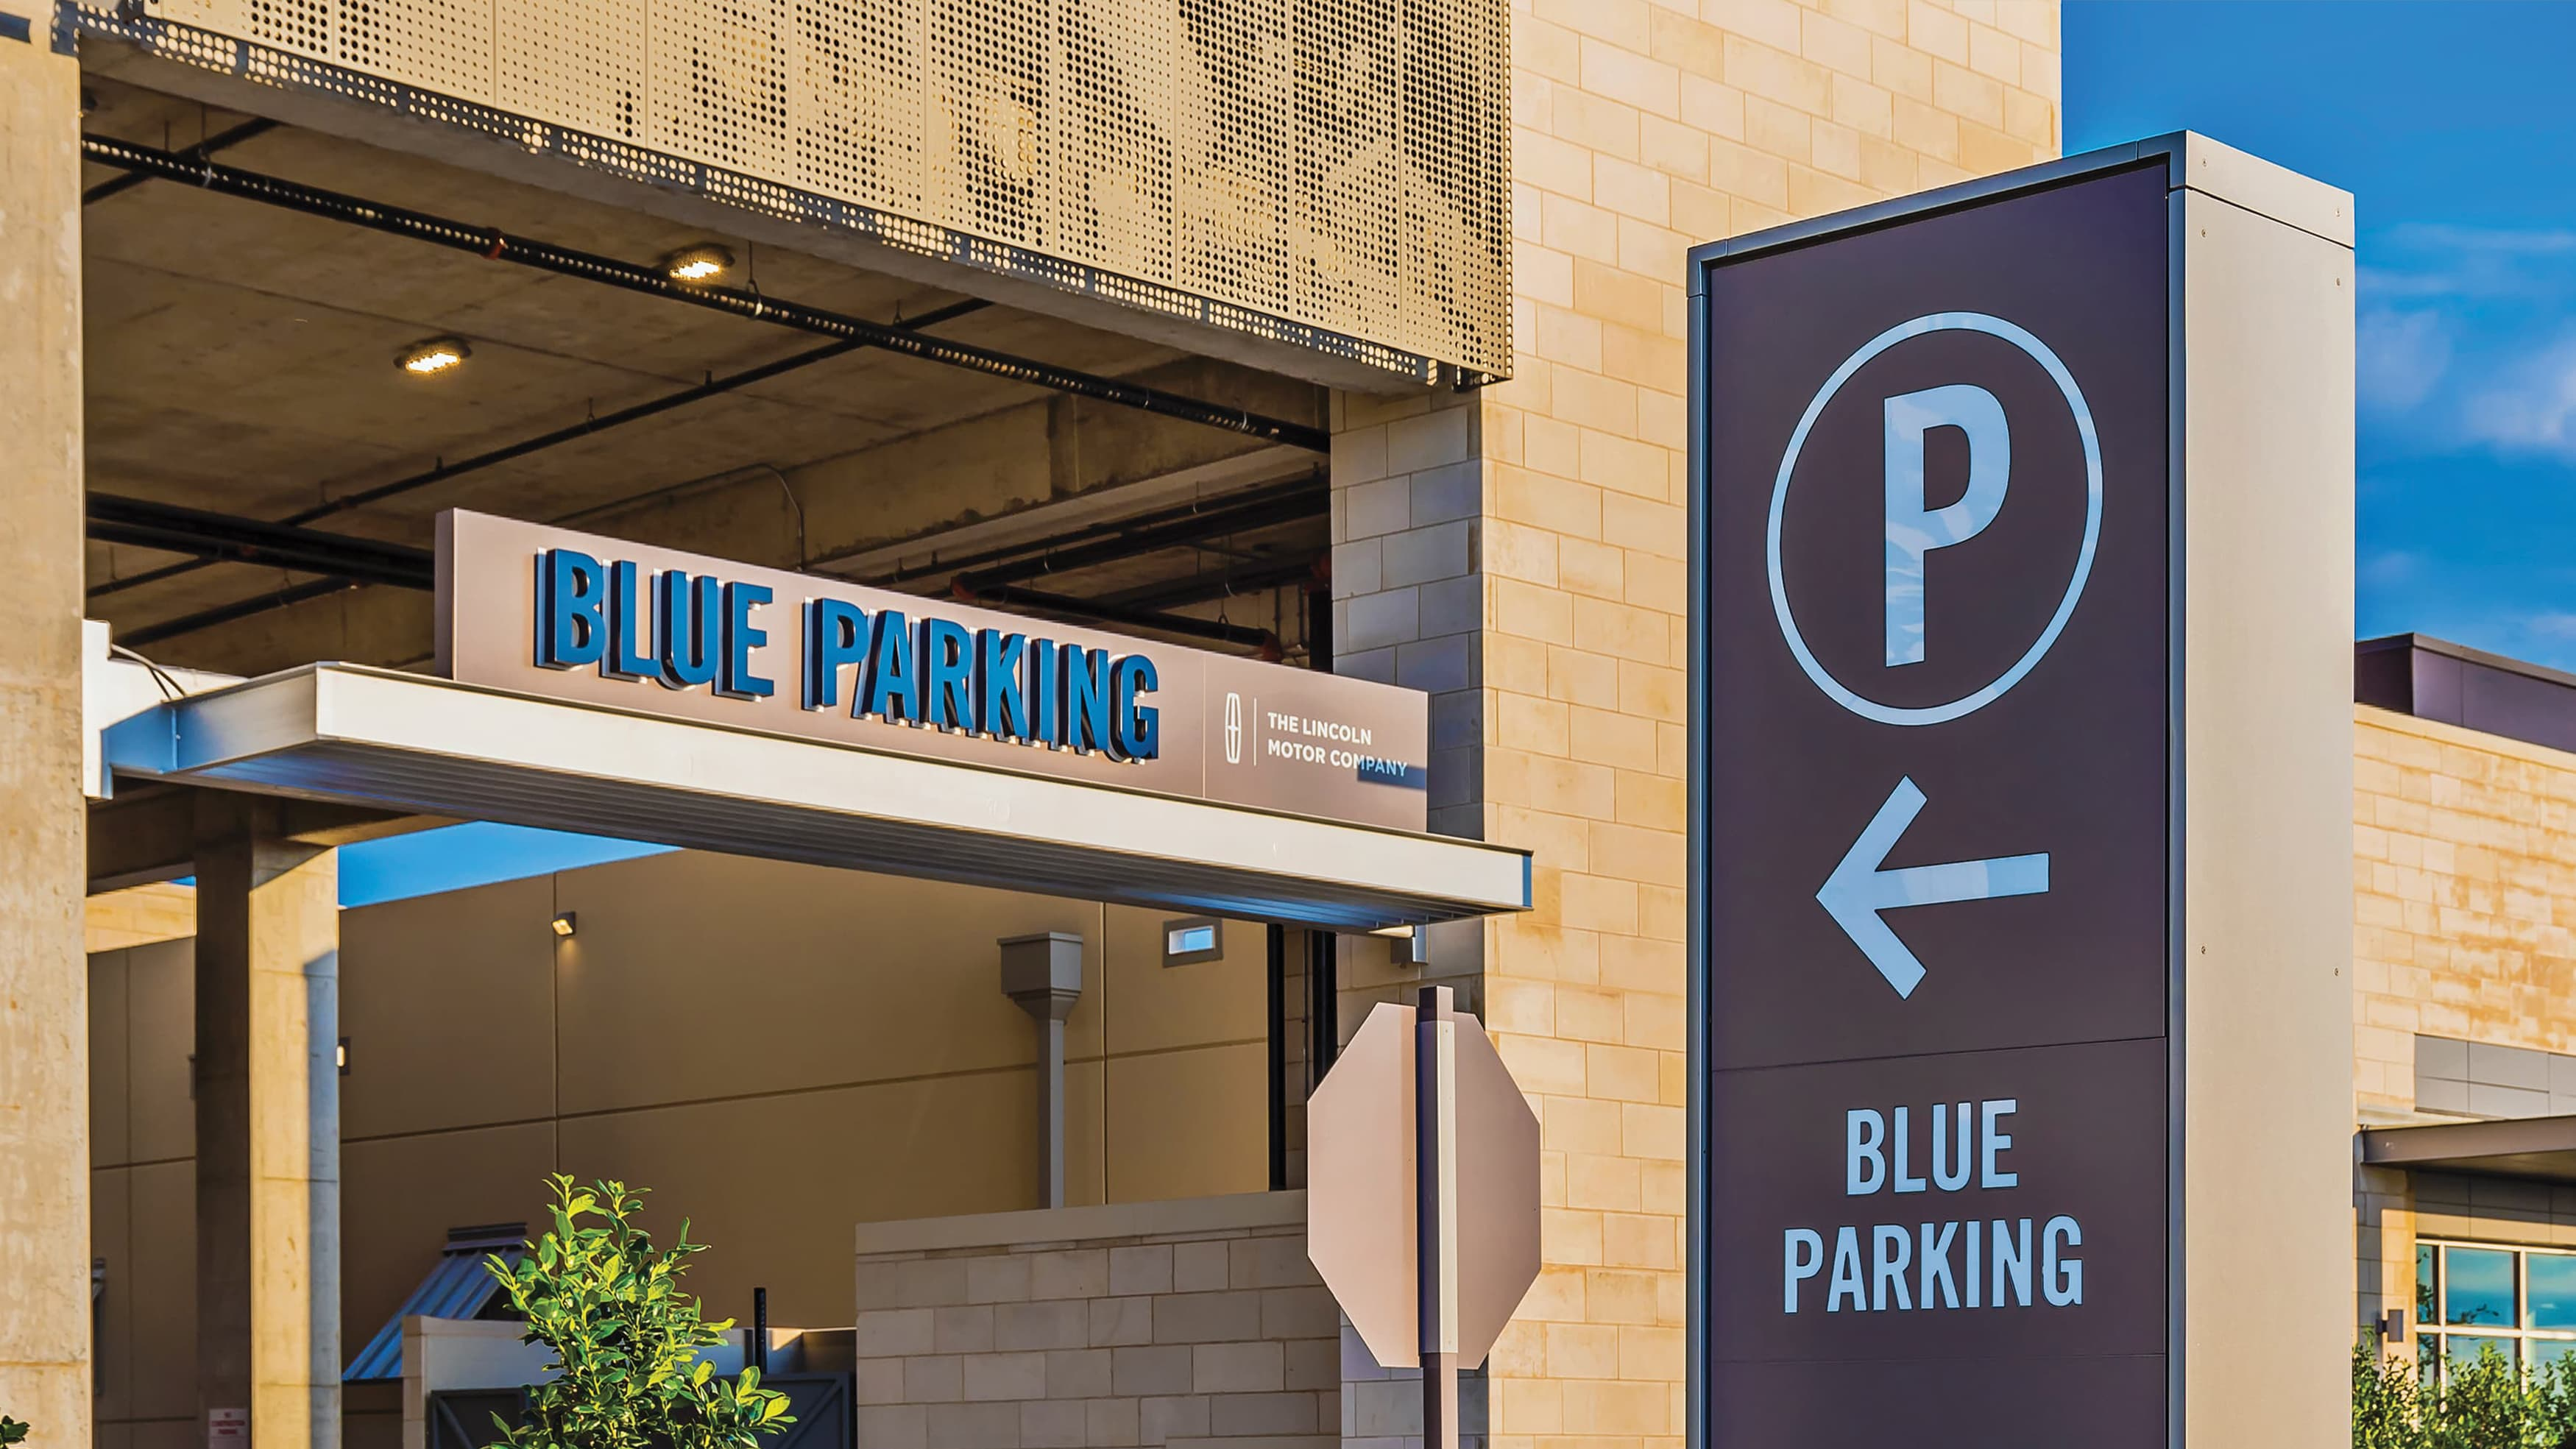 Parking wayfinding signage and parking structure naming